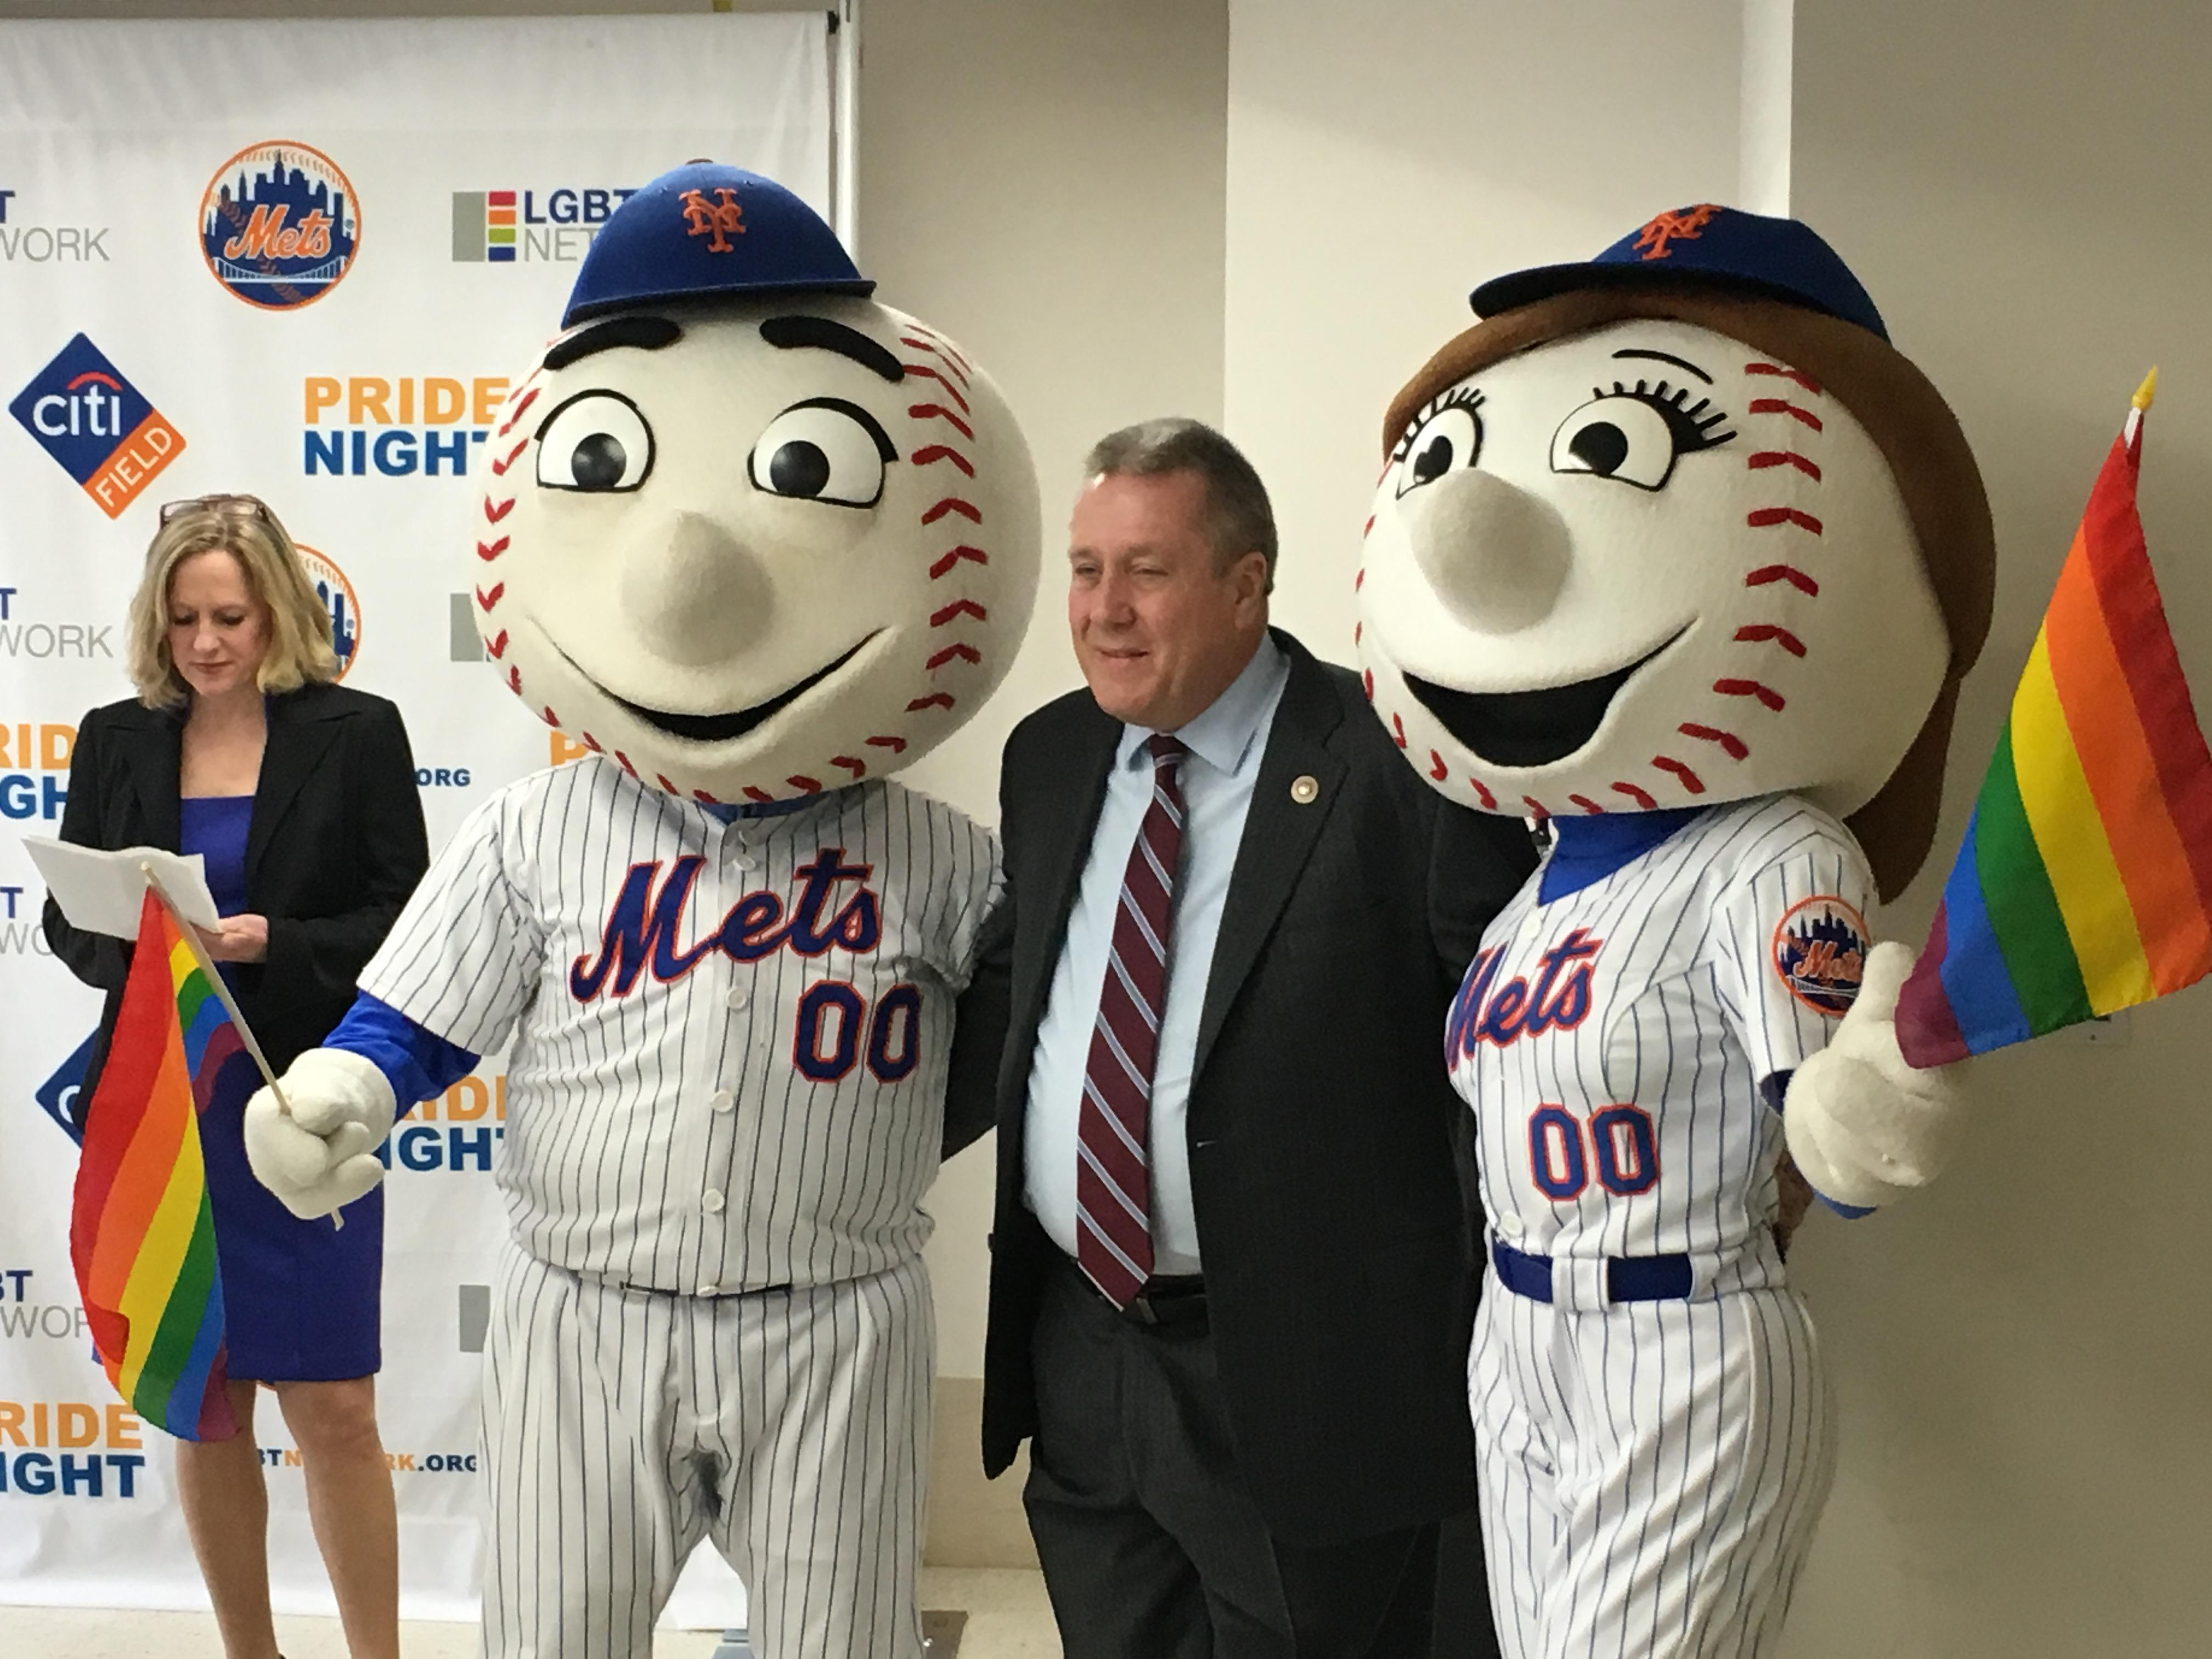 mr/mrs met